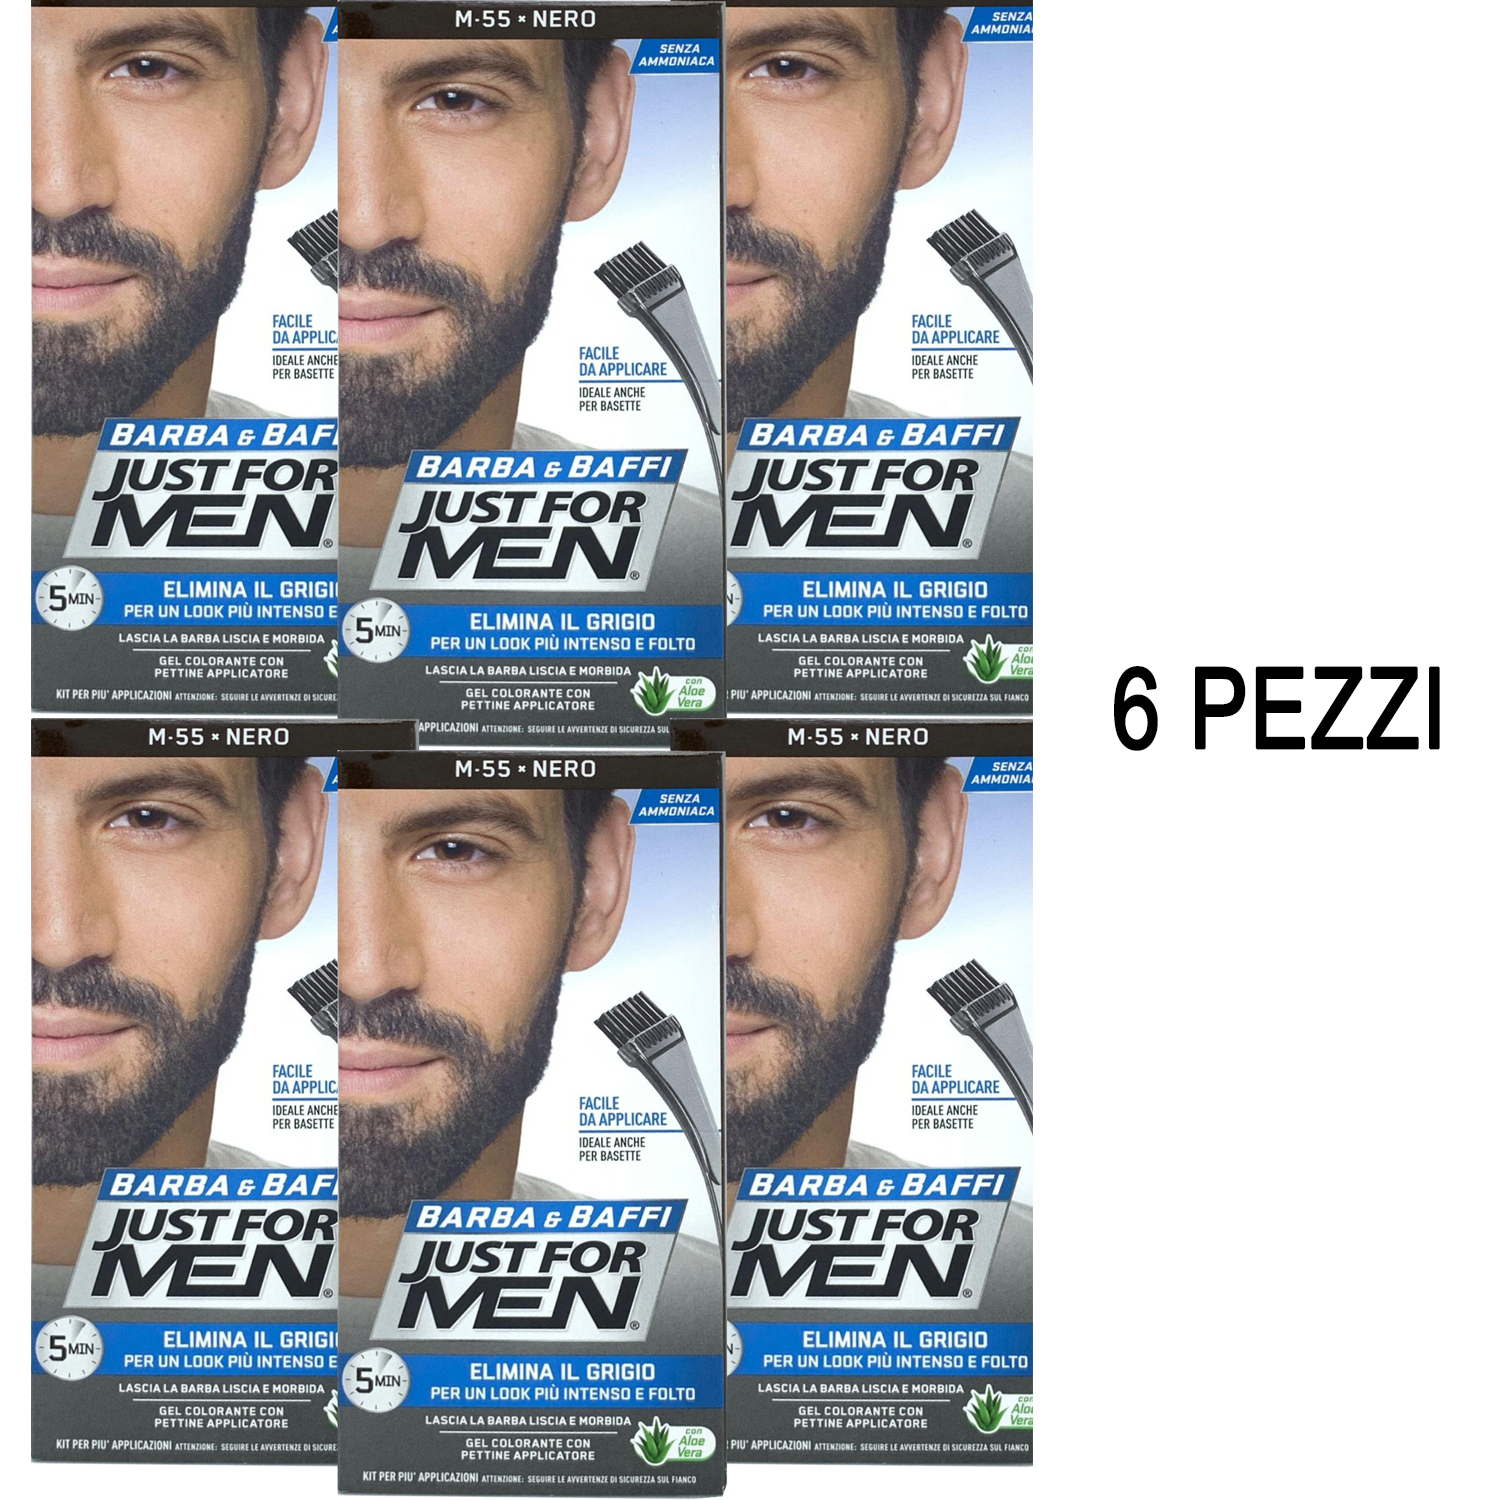 6 X JUST FOR MEN BARBA E BAFFI COLORE TINTURA PERMANENTE CON PENNELLO NERO M 55 GEL COLORANTE 2 X 14g